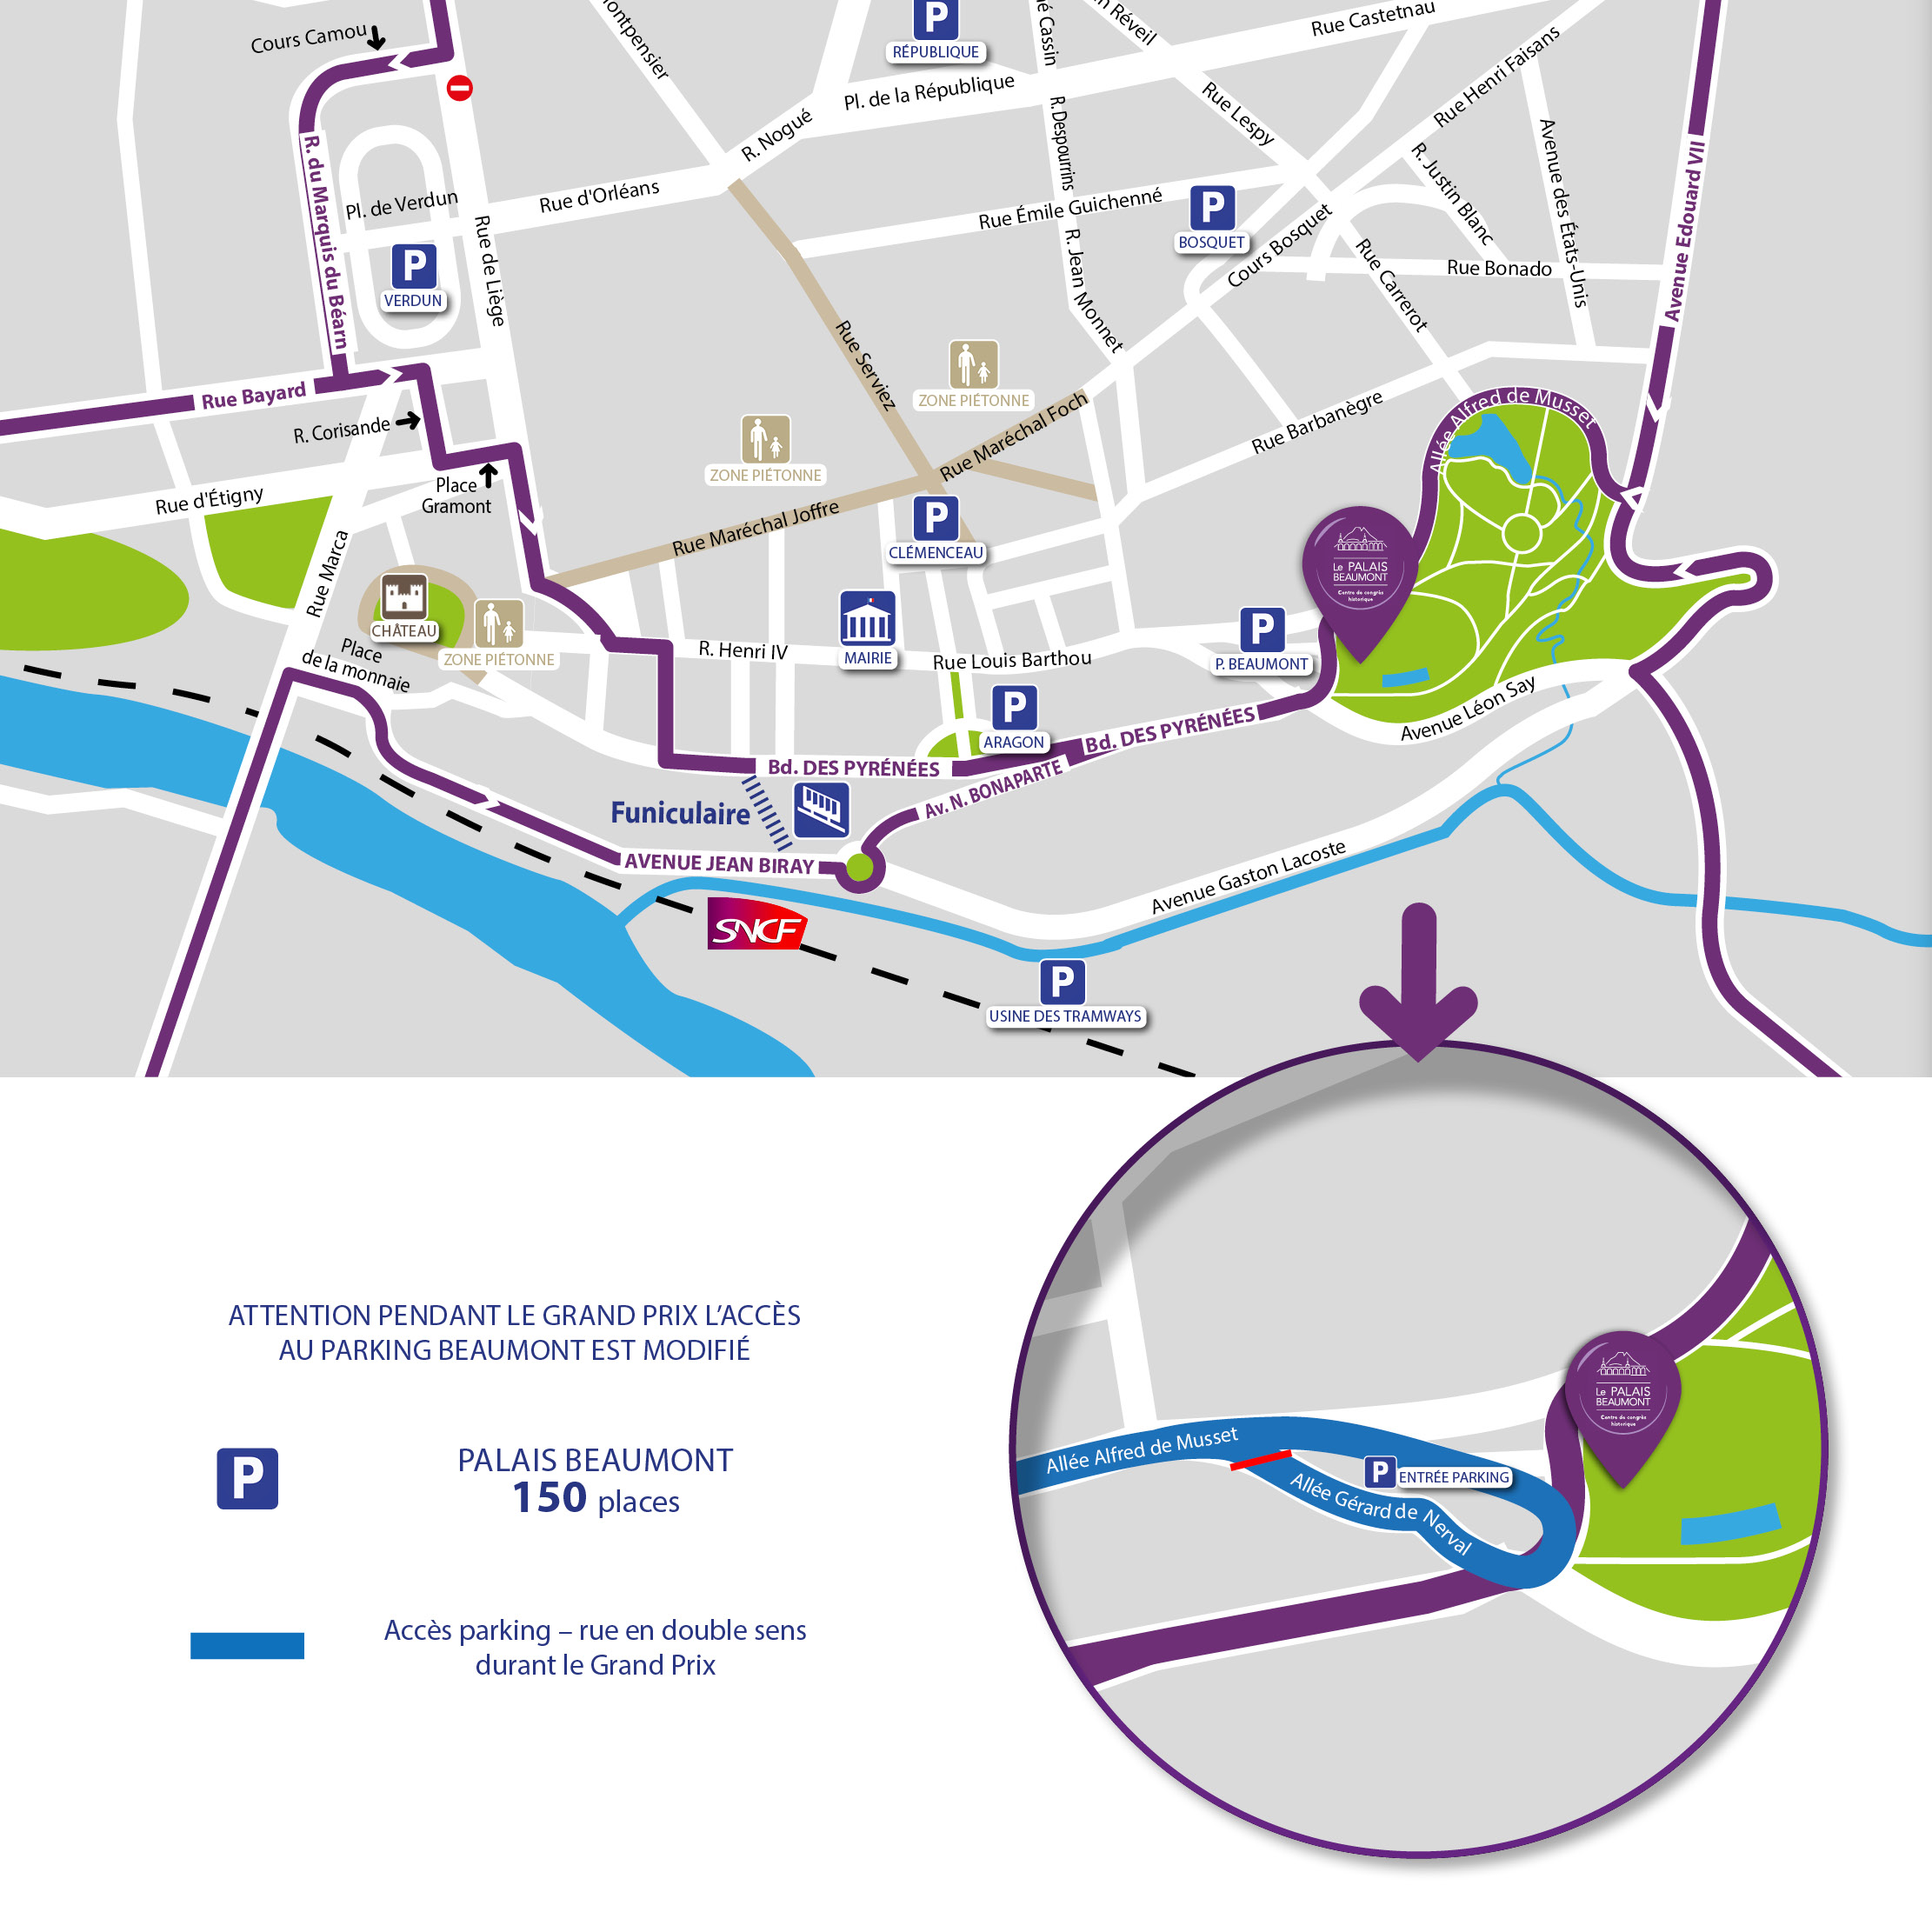 Plan accès parking beaumont pendant Grand Prix automobile general et loupe palais beaumont 2016